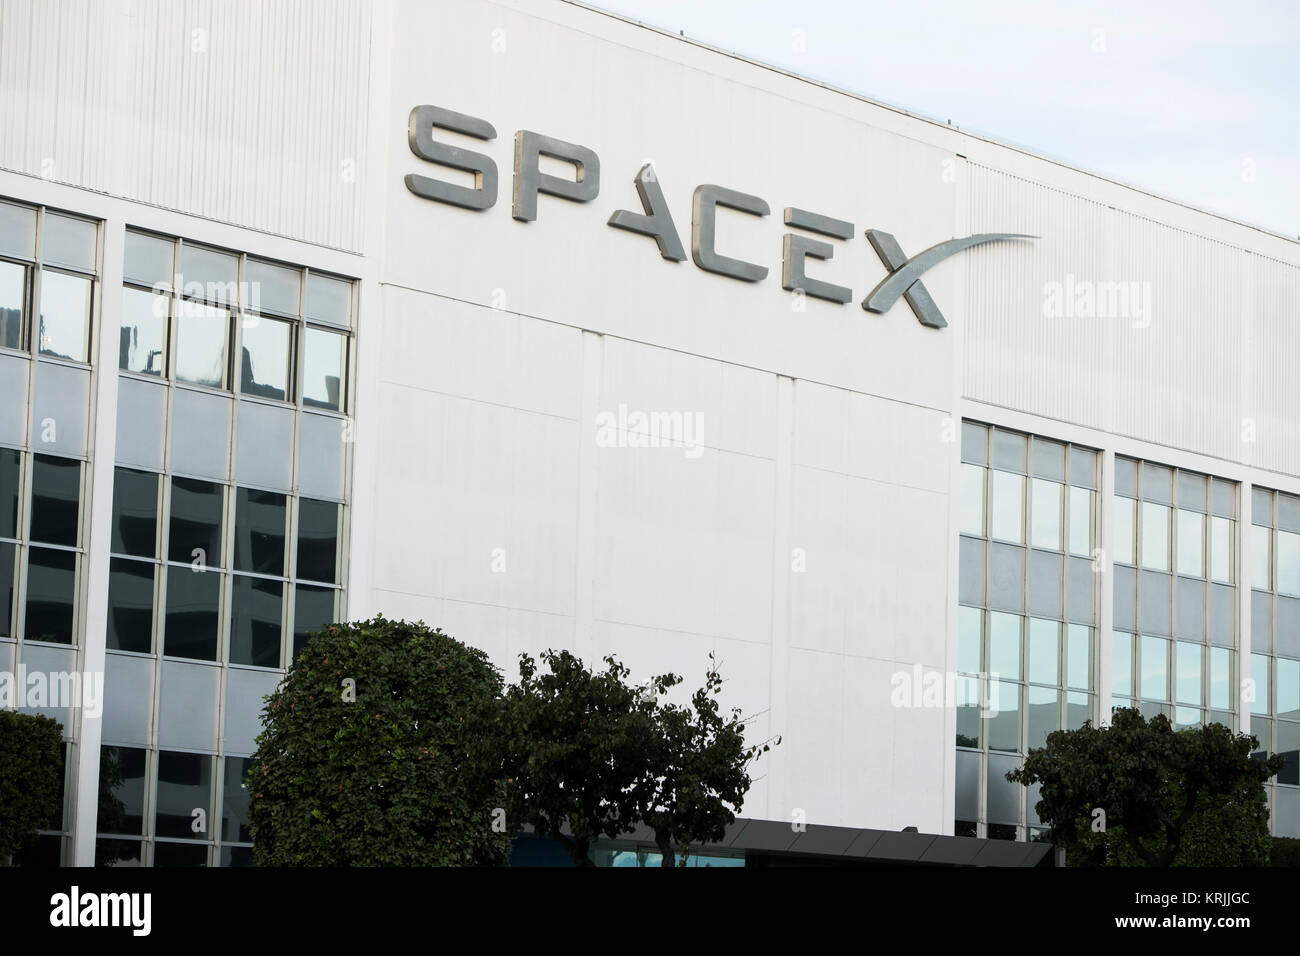 Spacex employee stock options